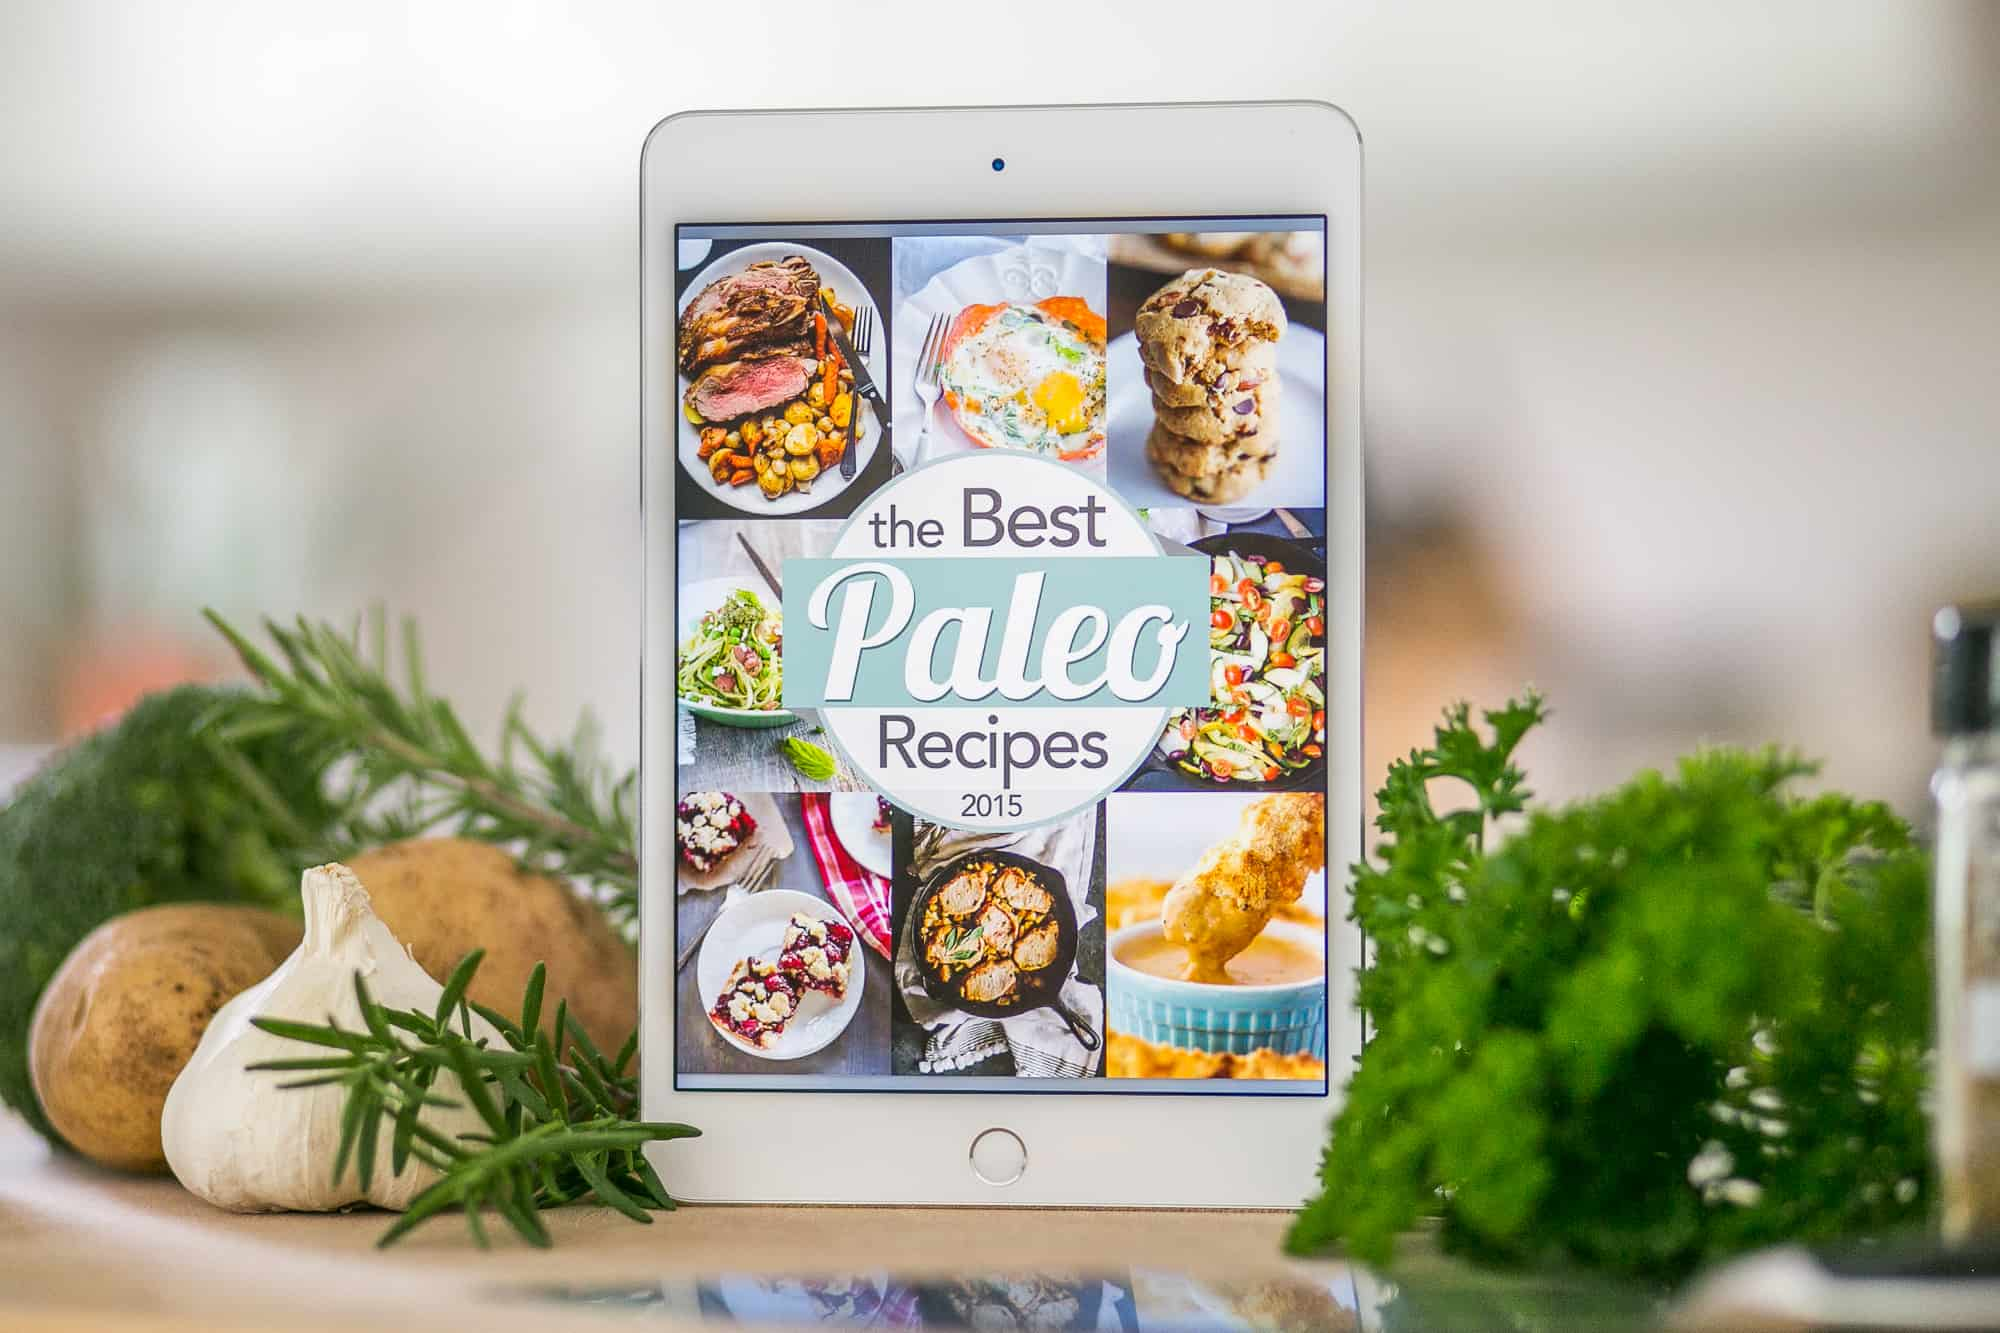 The Best Paleo Recipes of 2015